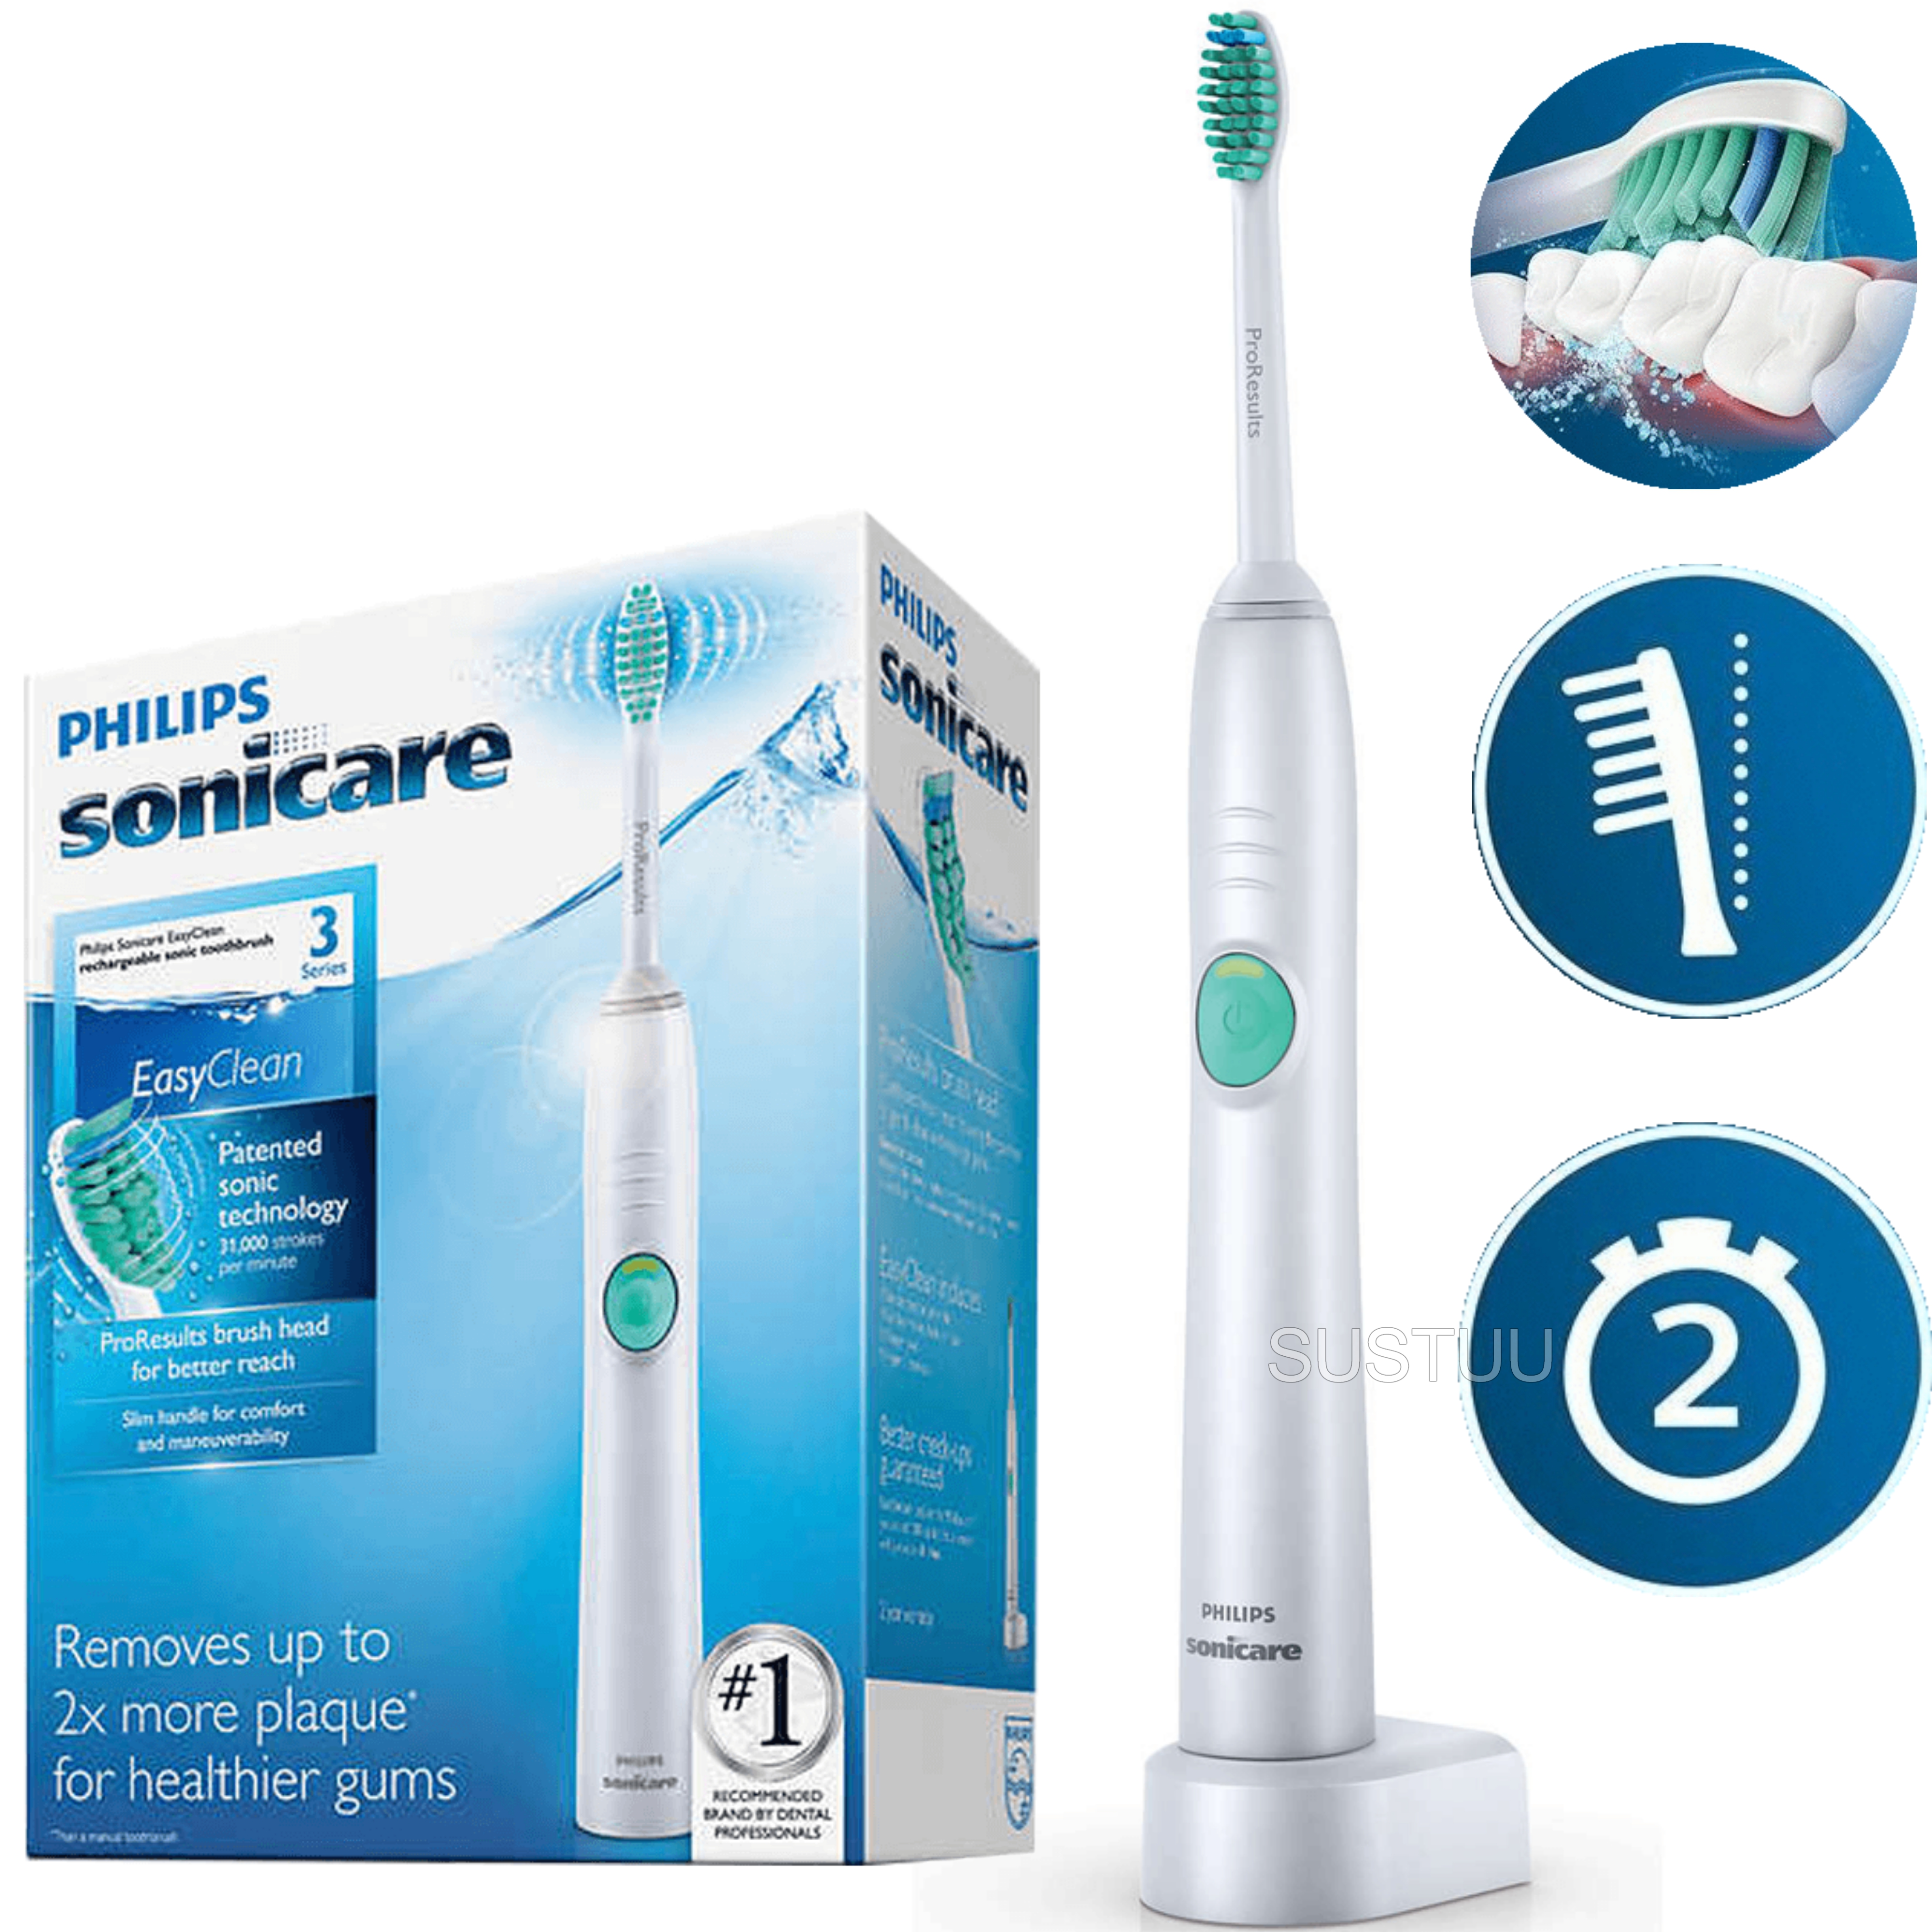 Philips Sonicare Easyclean Electric Rechargeable Toothbrush | Quadpacer-SmartTimer